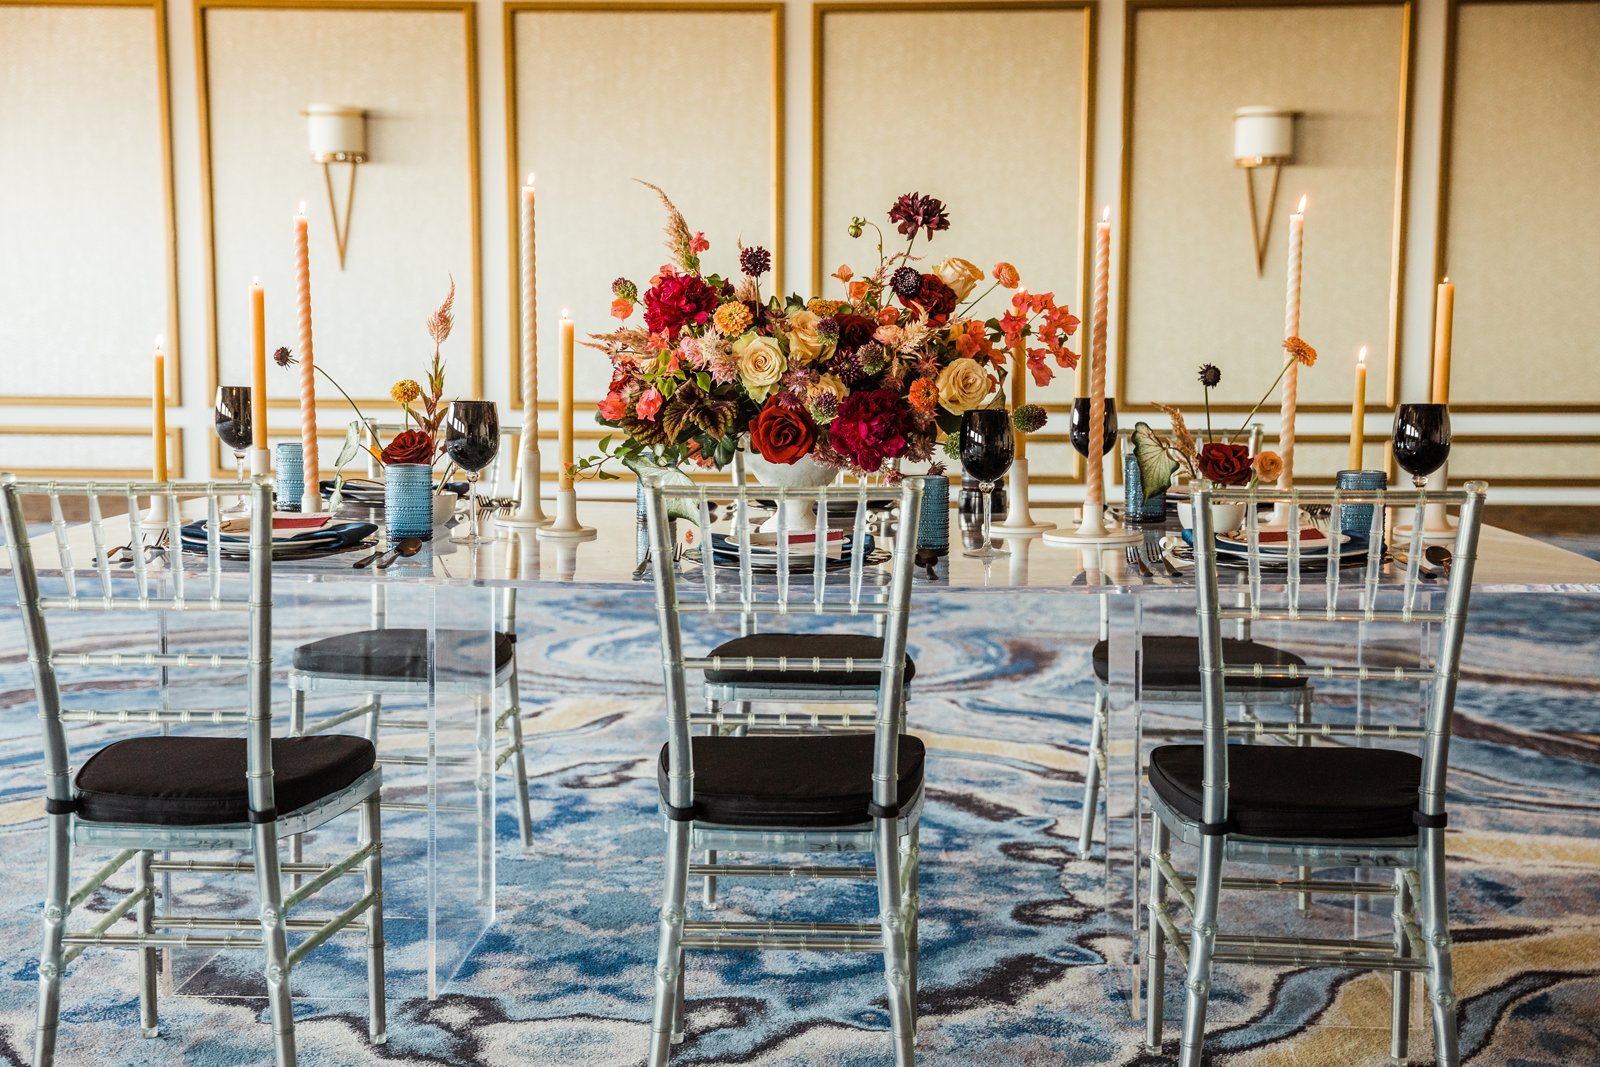 Glass table in ballroom with 6 chairs and fine place settings, floral centerpiece and several lit candles